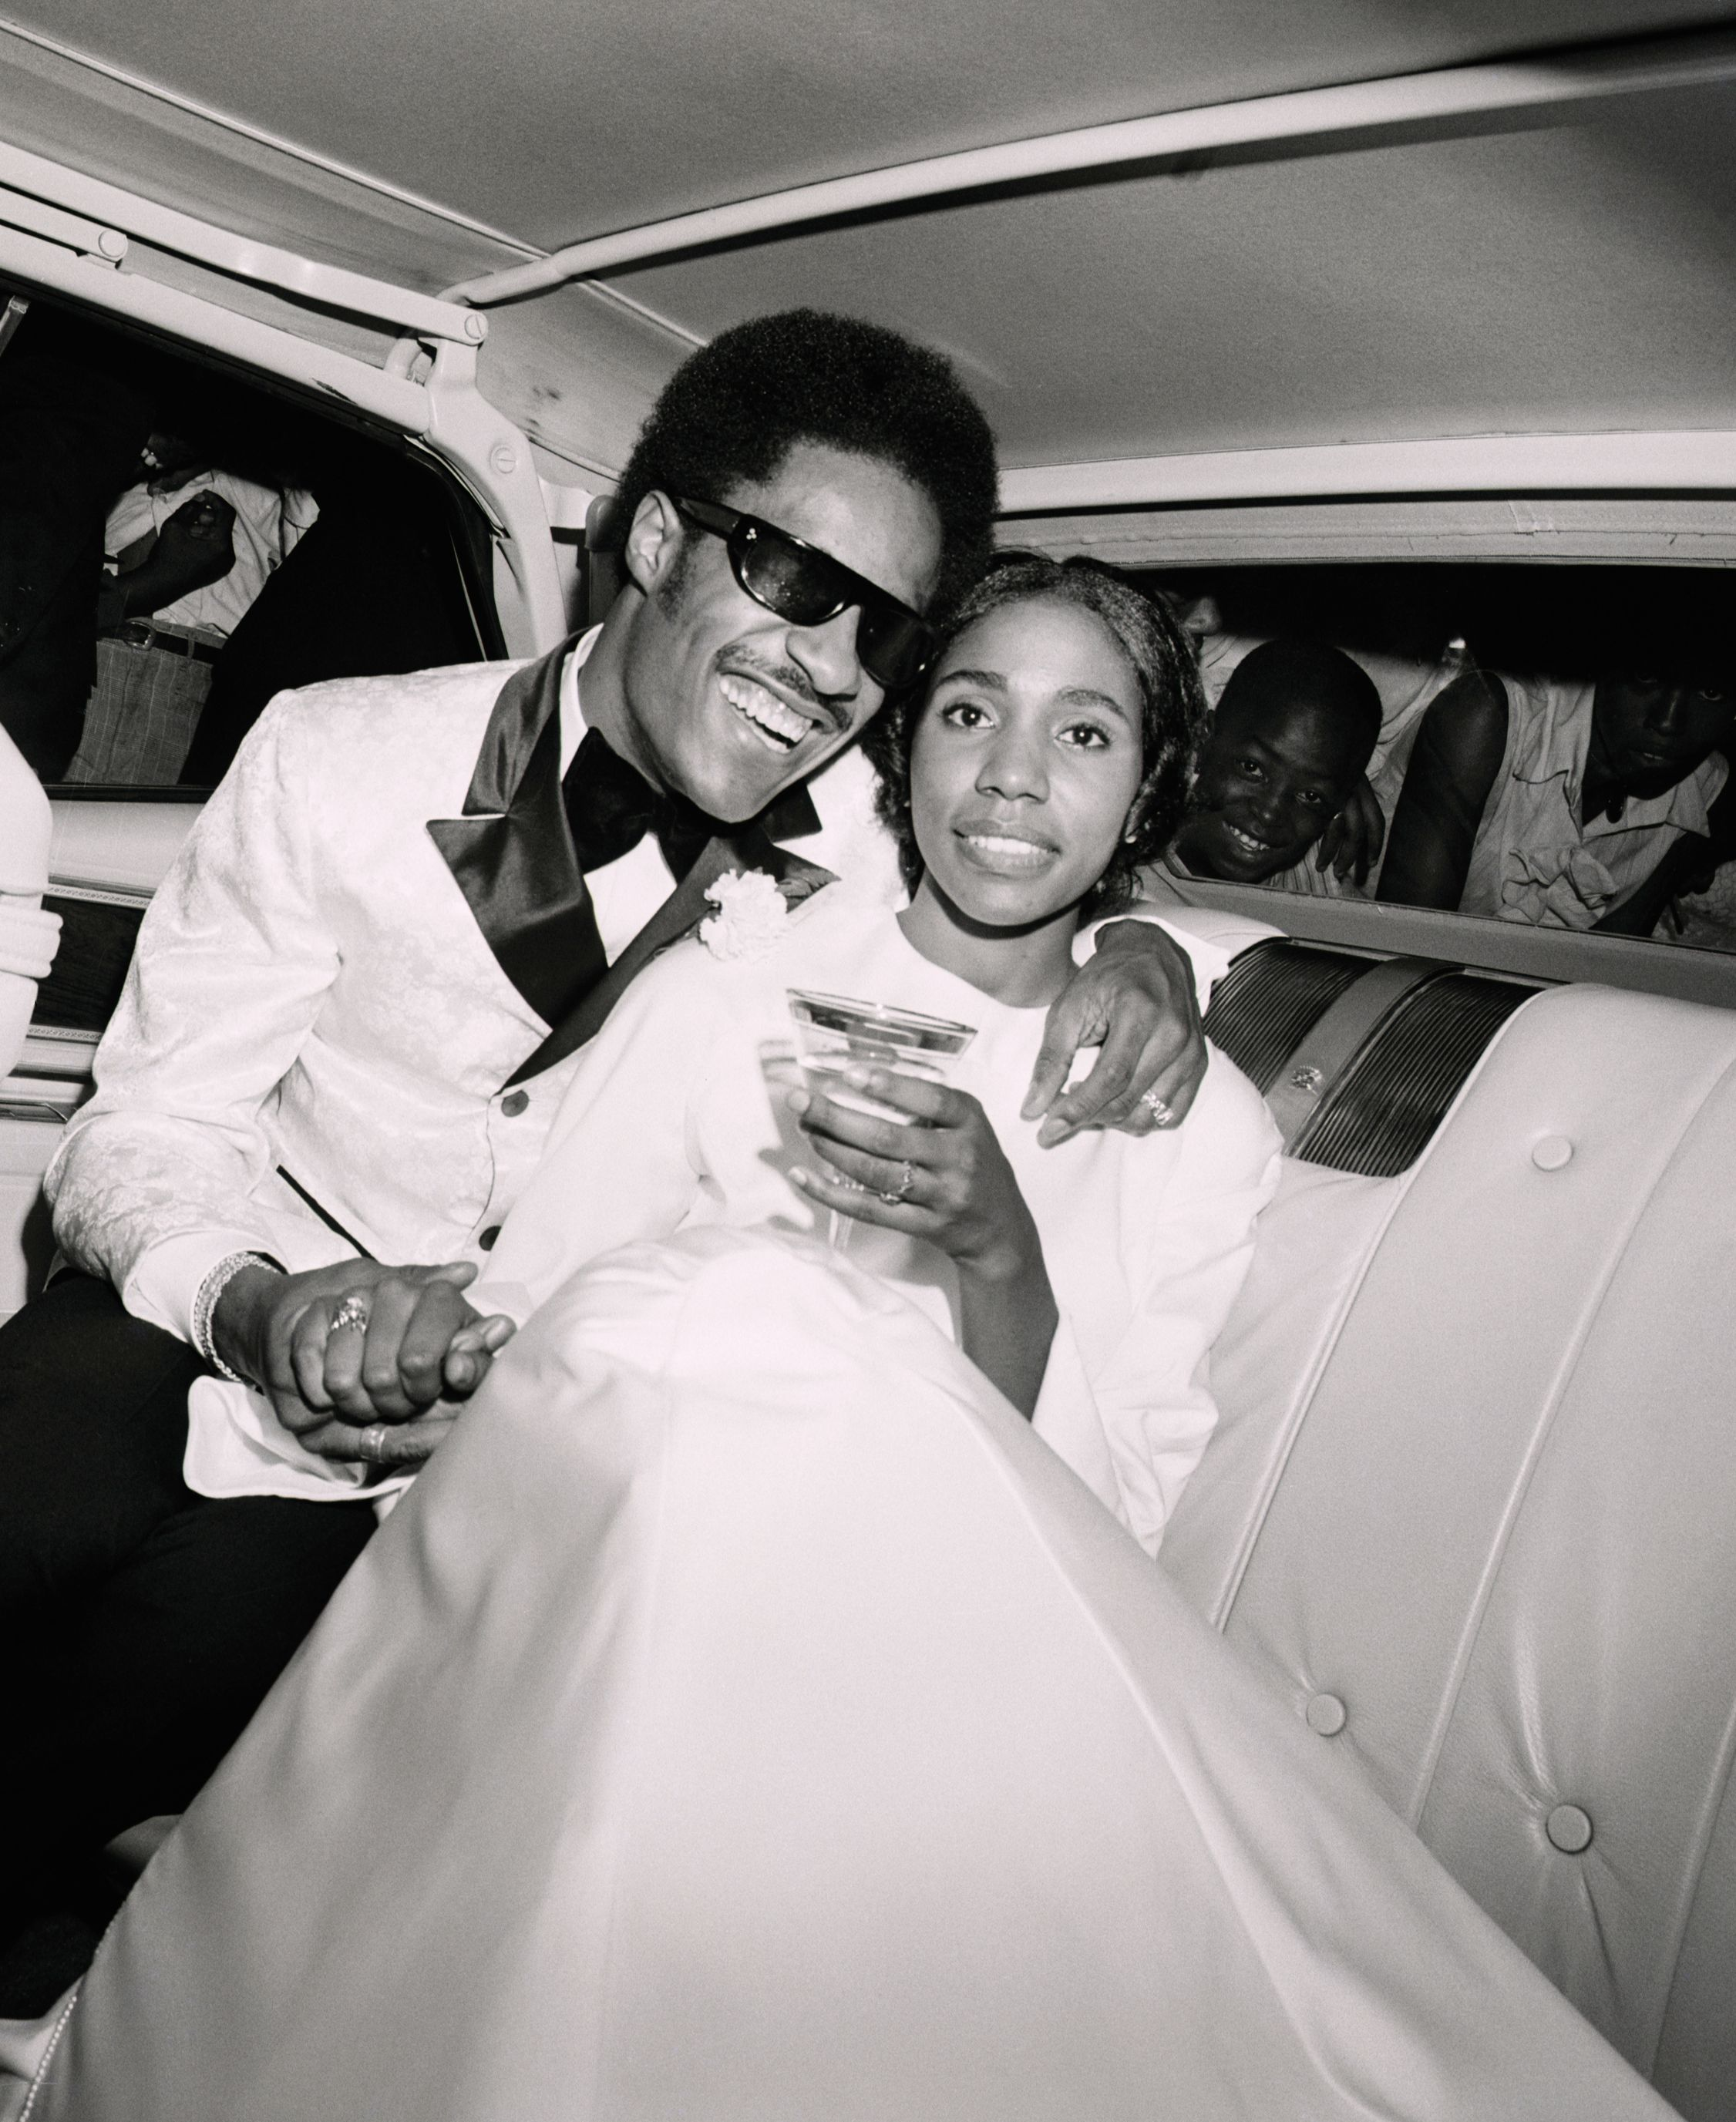 Stevie Wonder and Motown songwriter Syreeta Wright on their wedding day in 1970 | Source: Getty Images